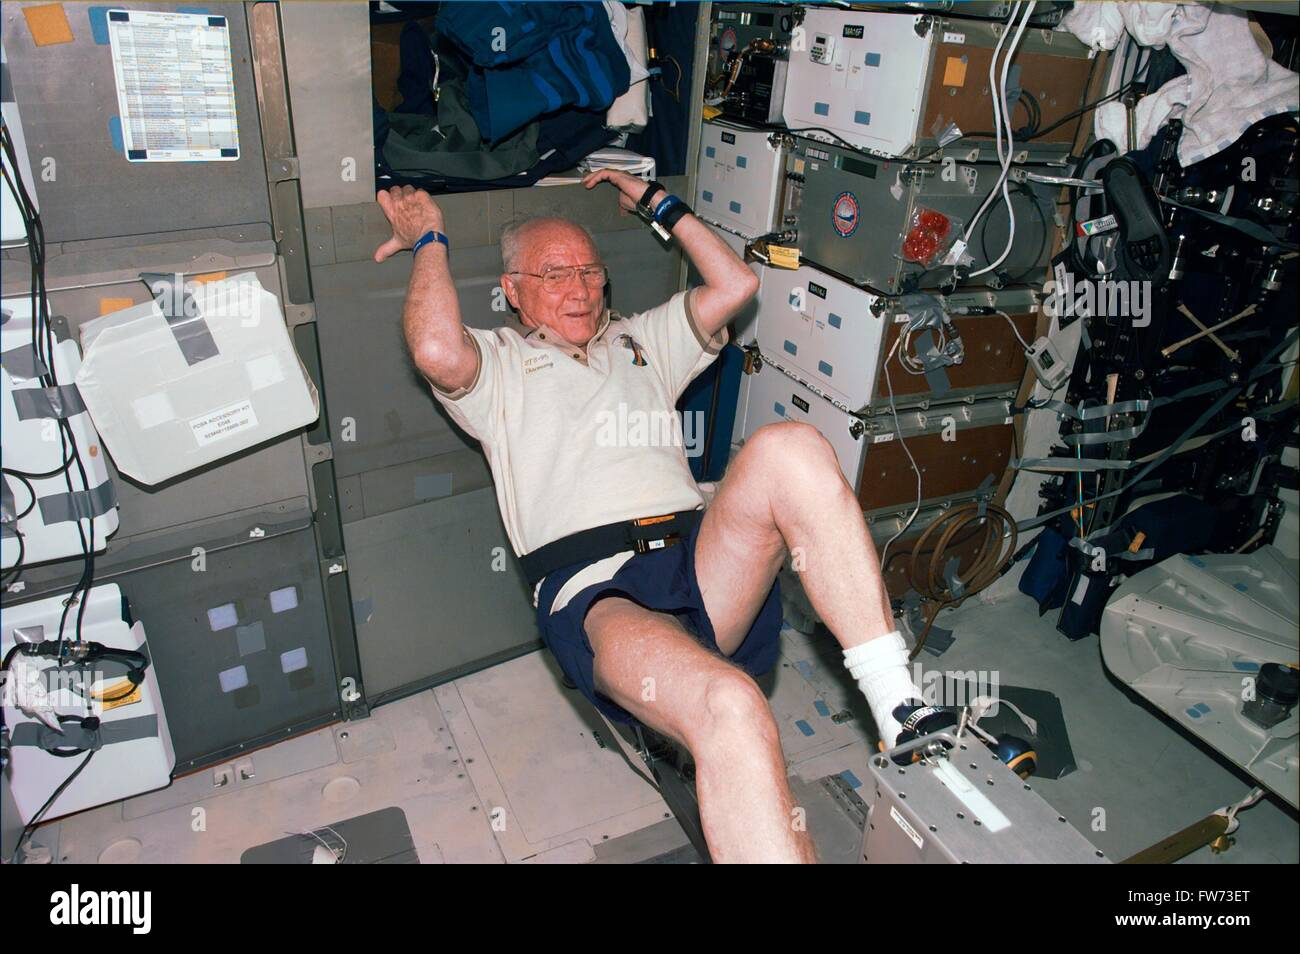 Space Shuttle Discovery STS-95 astronaut and Senator John Glenn works out on the ergometer device during flight - Stock Image